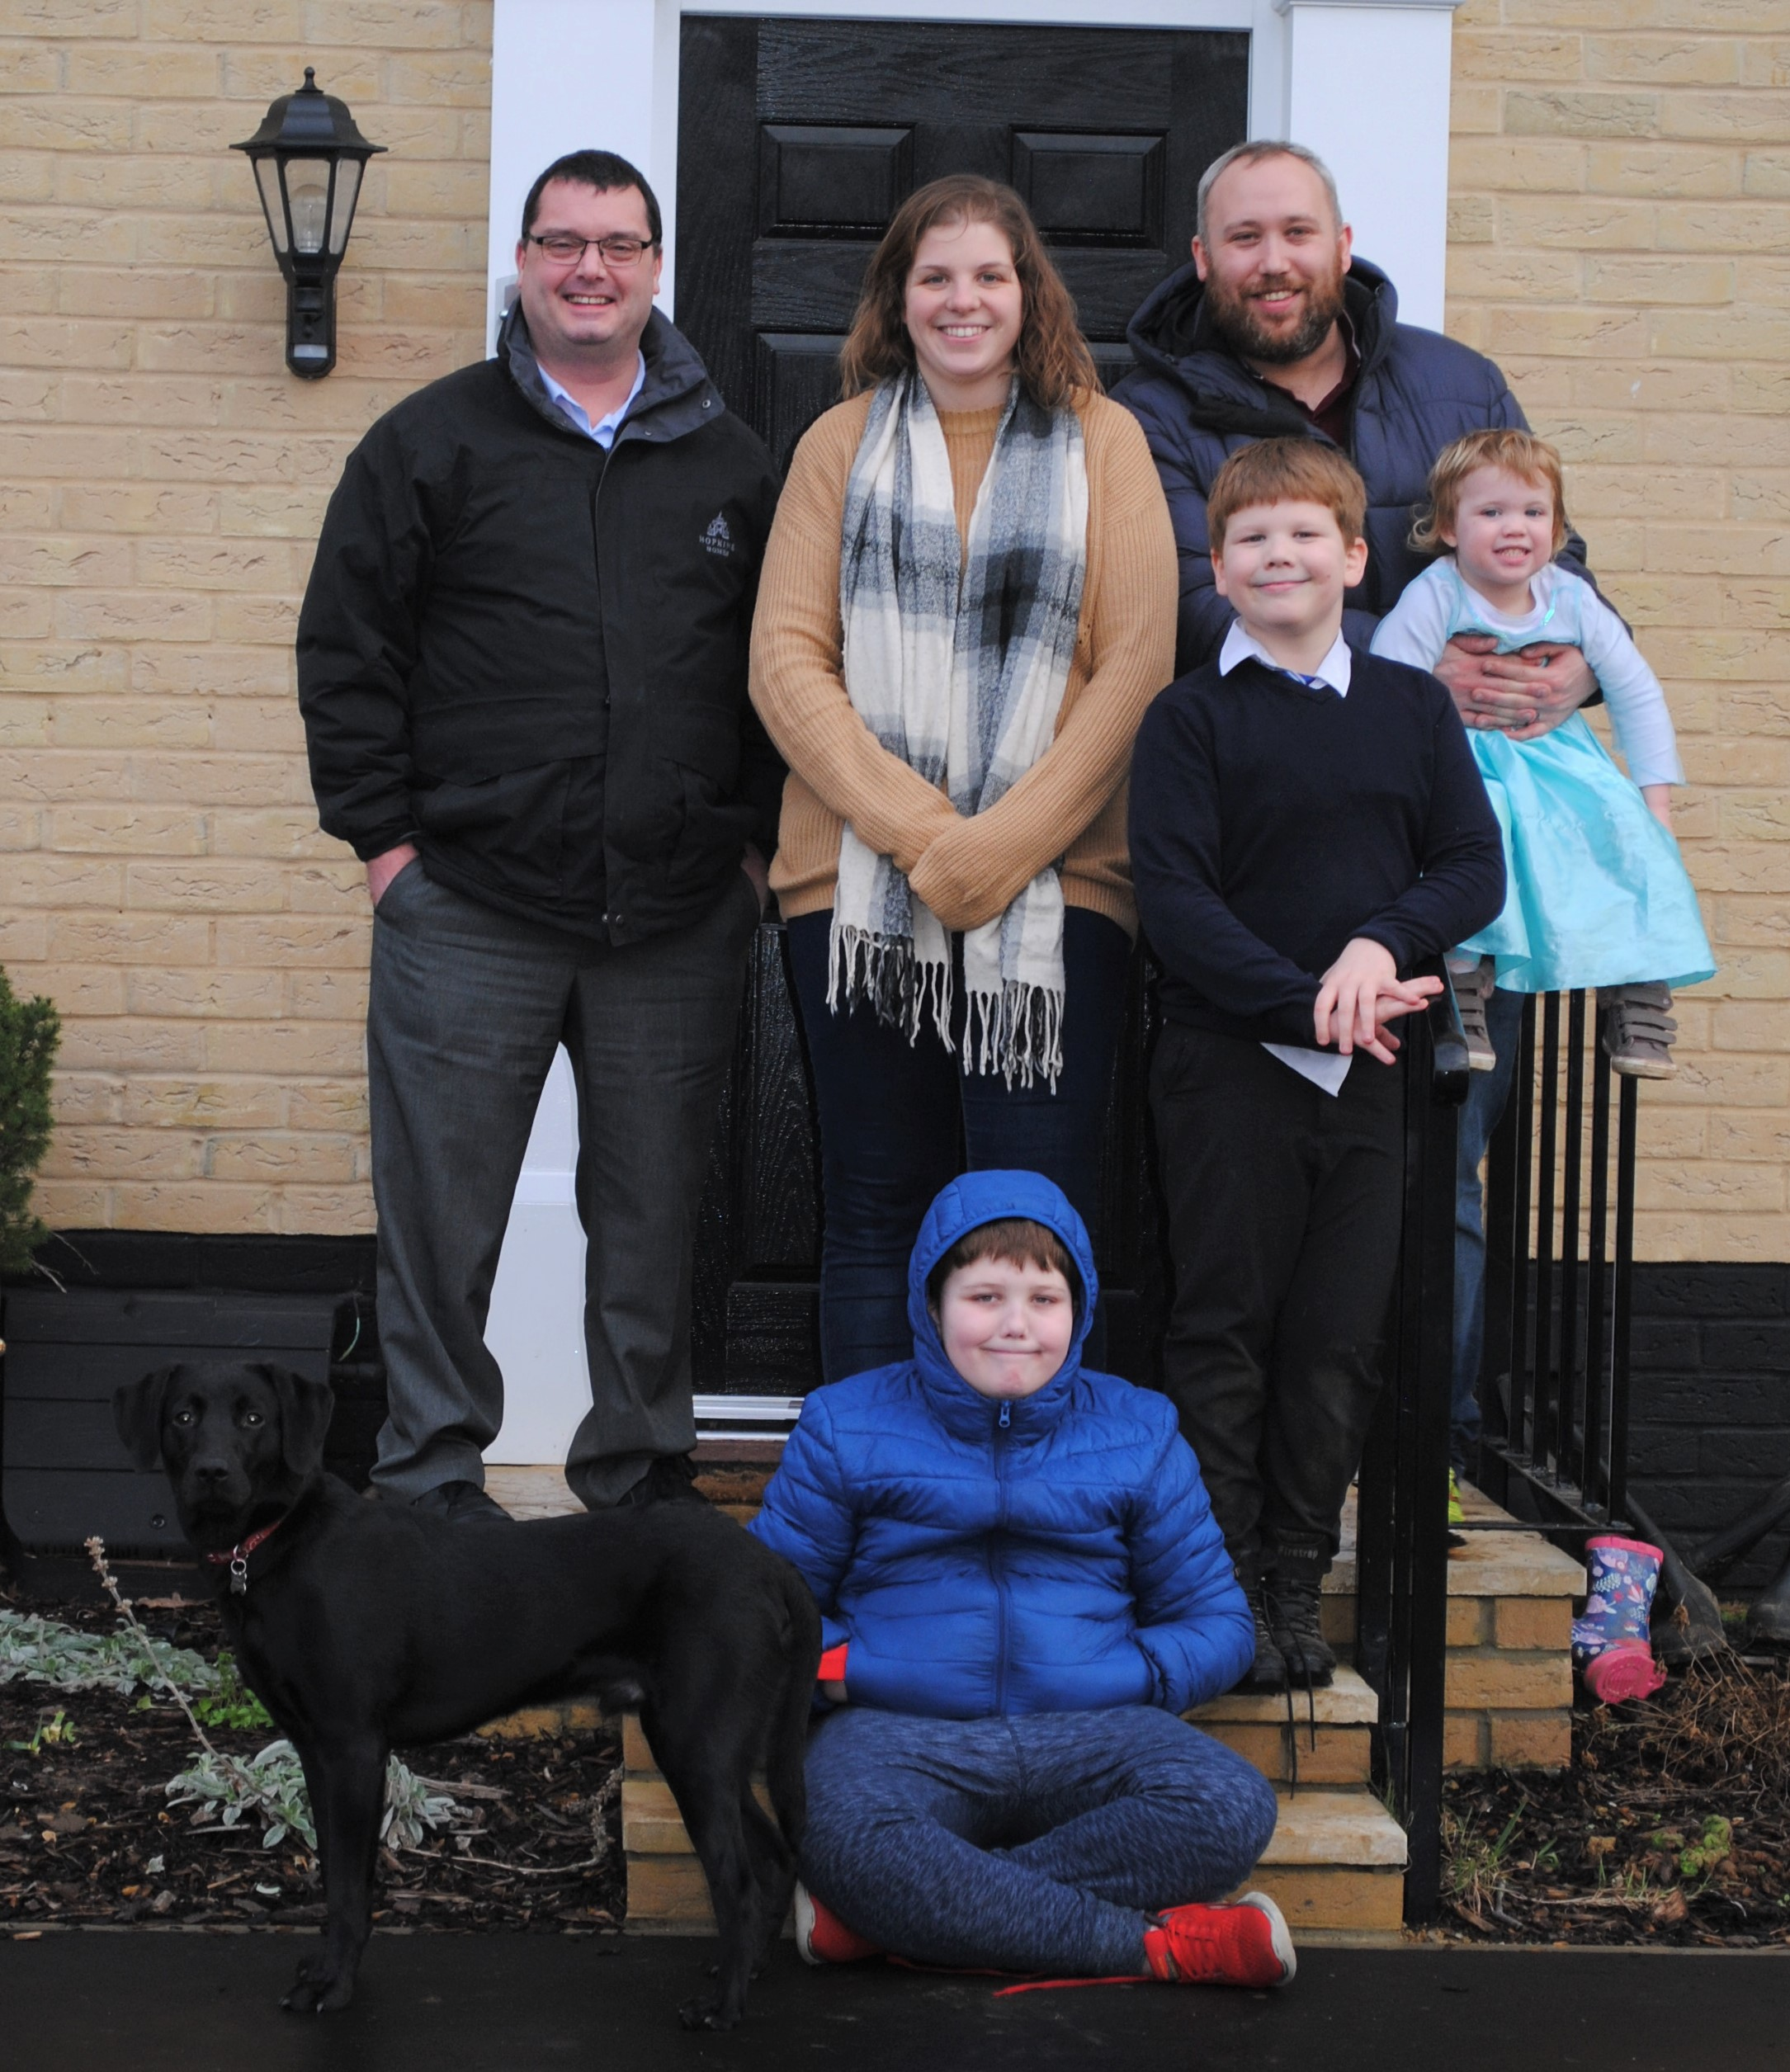 Nikki and Liam with children, dog and Shaun Tate of Hopkins Homes (left)